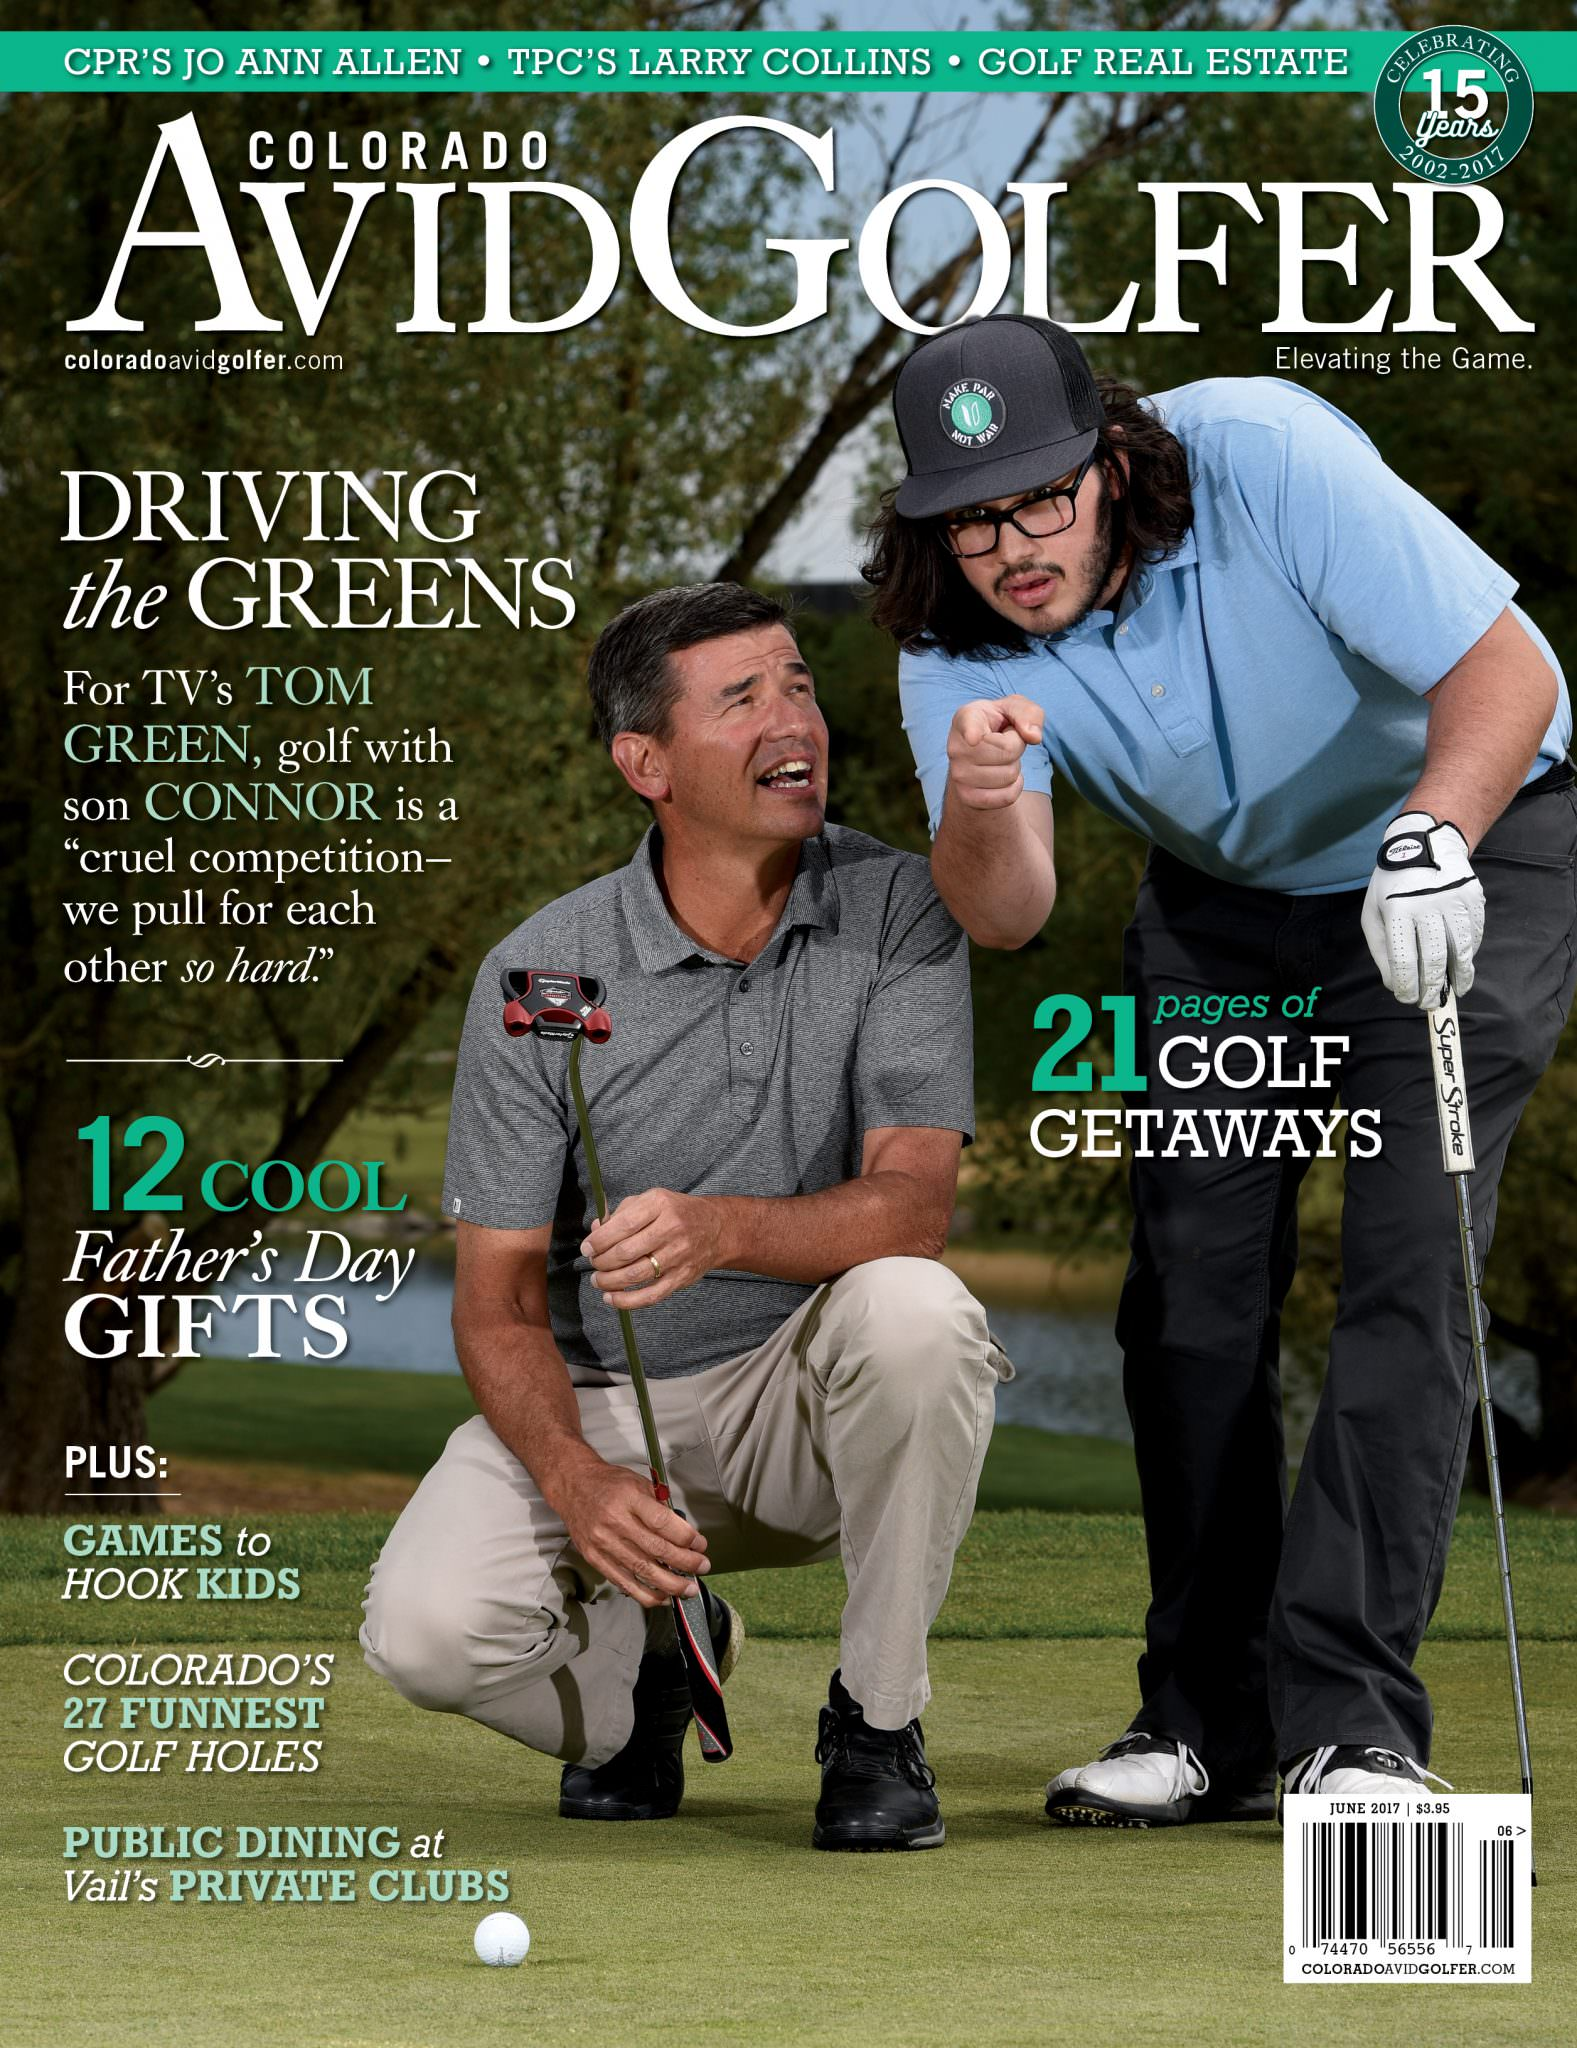 June 2017 Magazine - Colorado AvidGolfer